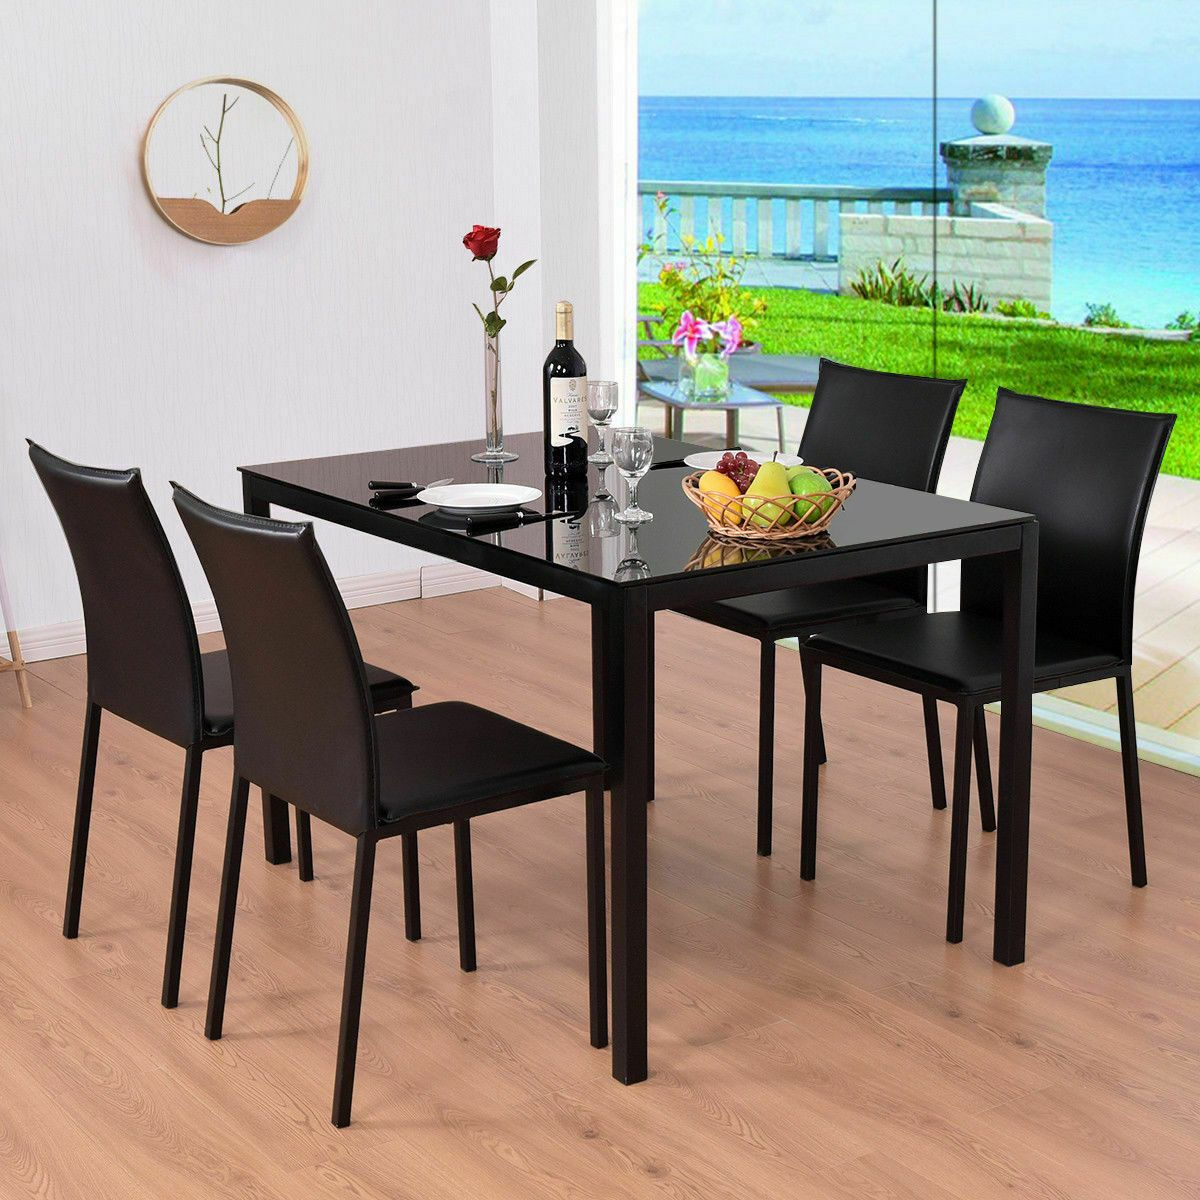 5 Piece Dining Set Glass Top Table And 4 Pu Chairs Kitchen